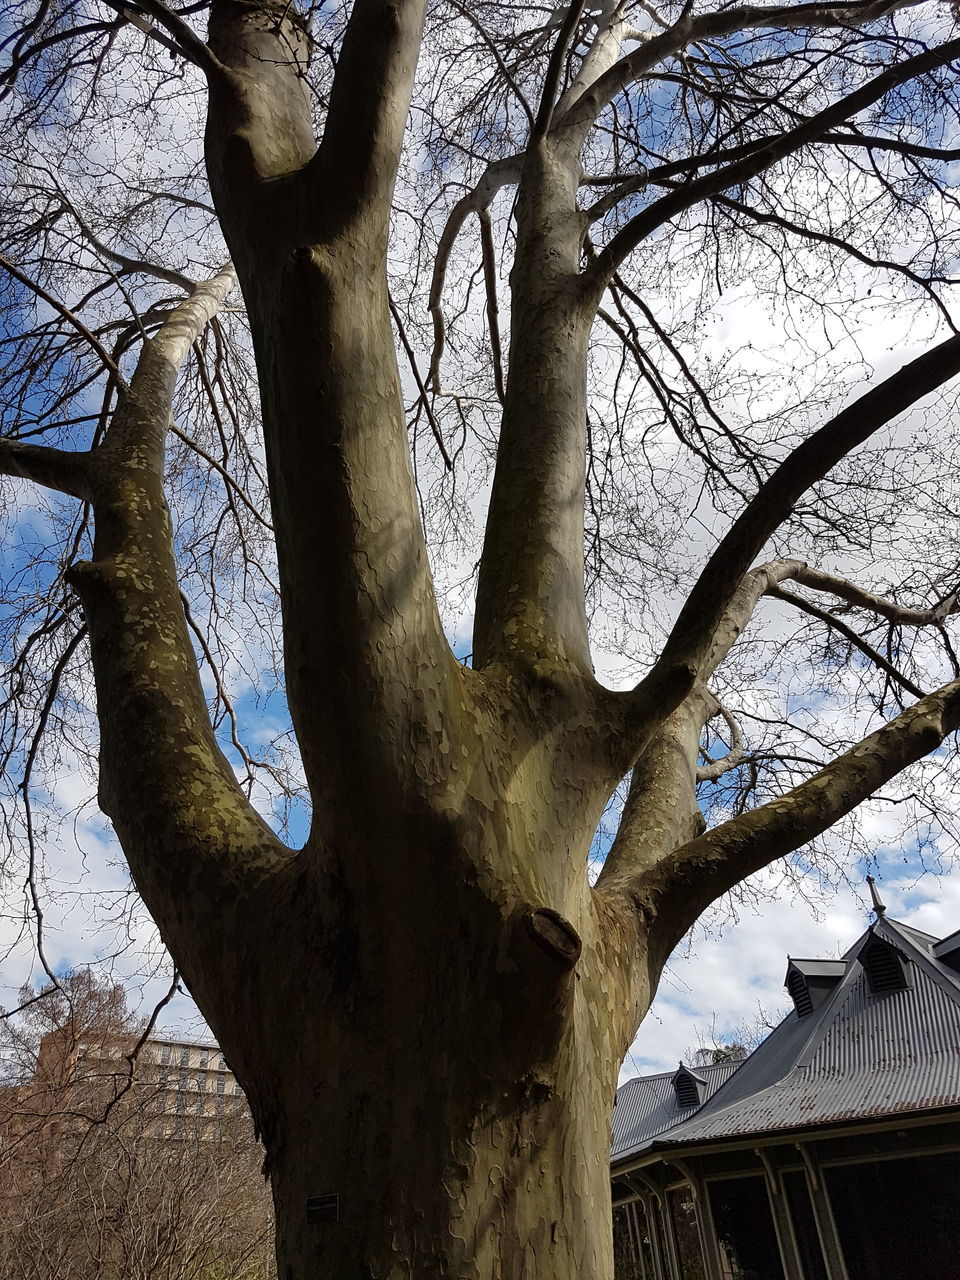 tree, bare tree, tree trunk, branch, low angle view, nature, outdoors, day, no people, architecture, beauty in nature, sky, animal themes, dead tree, mammal